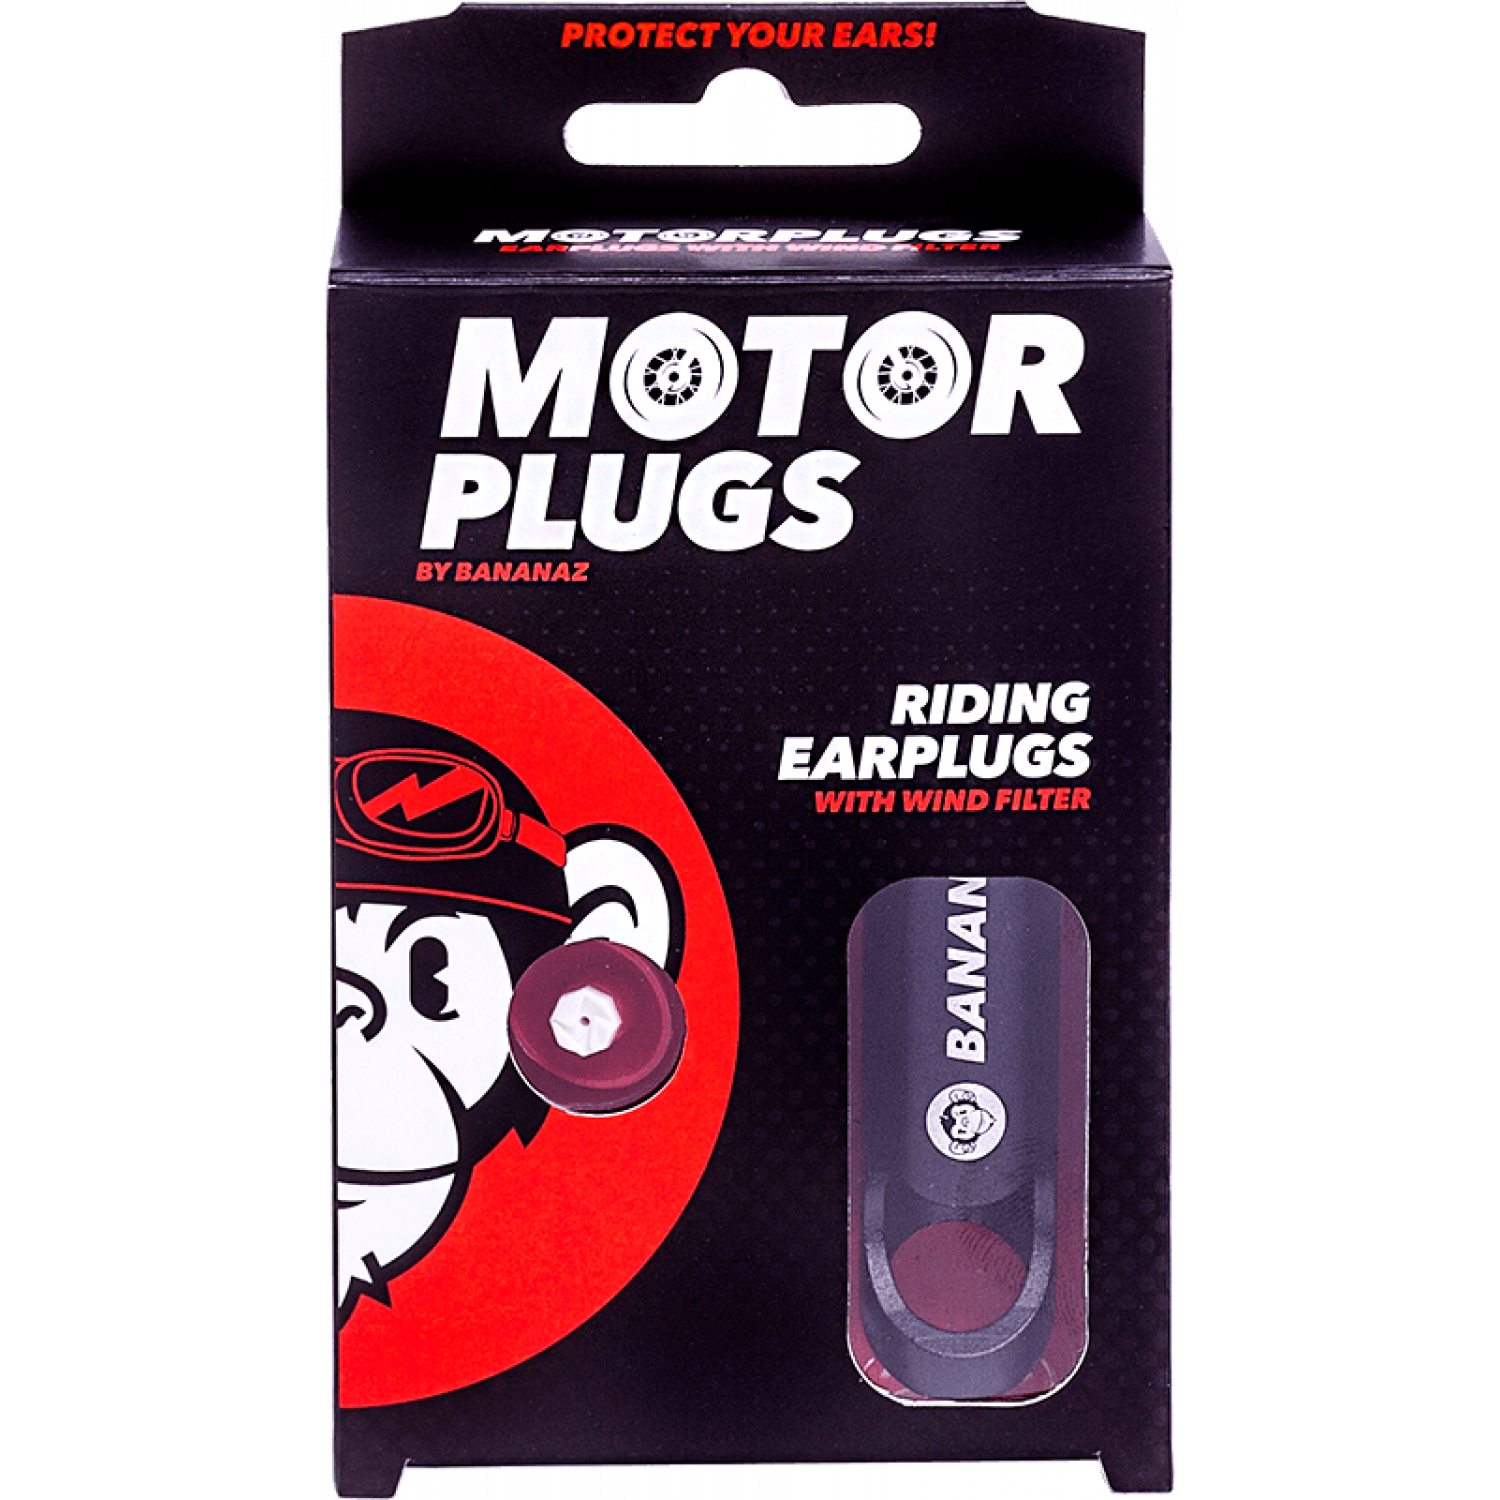 Motorplugs